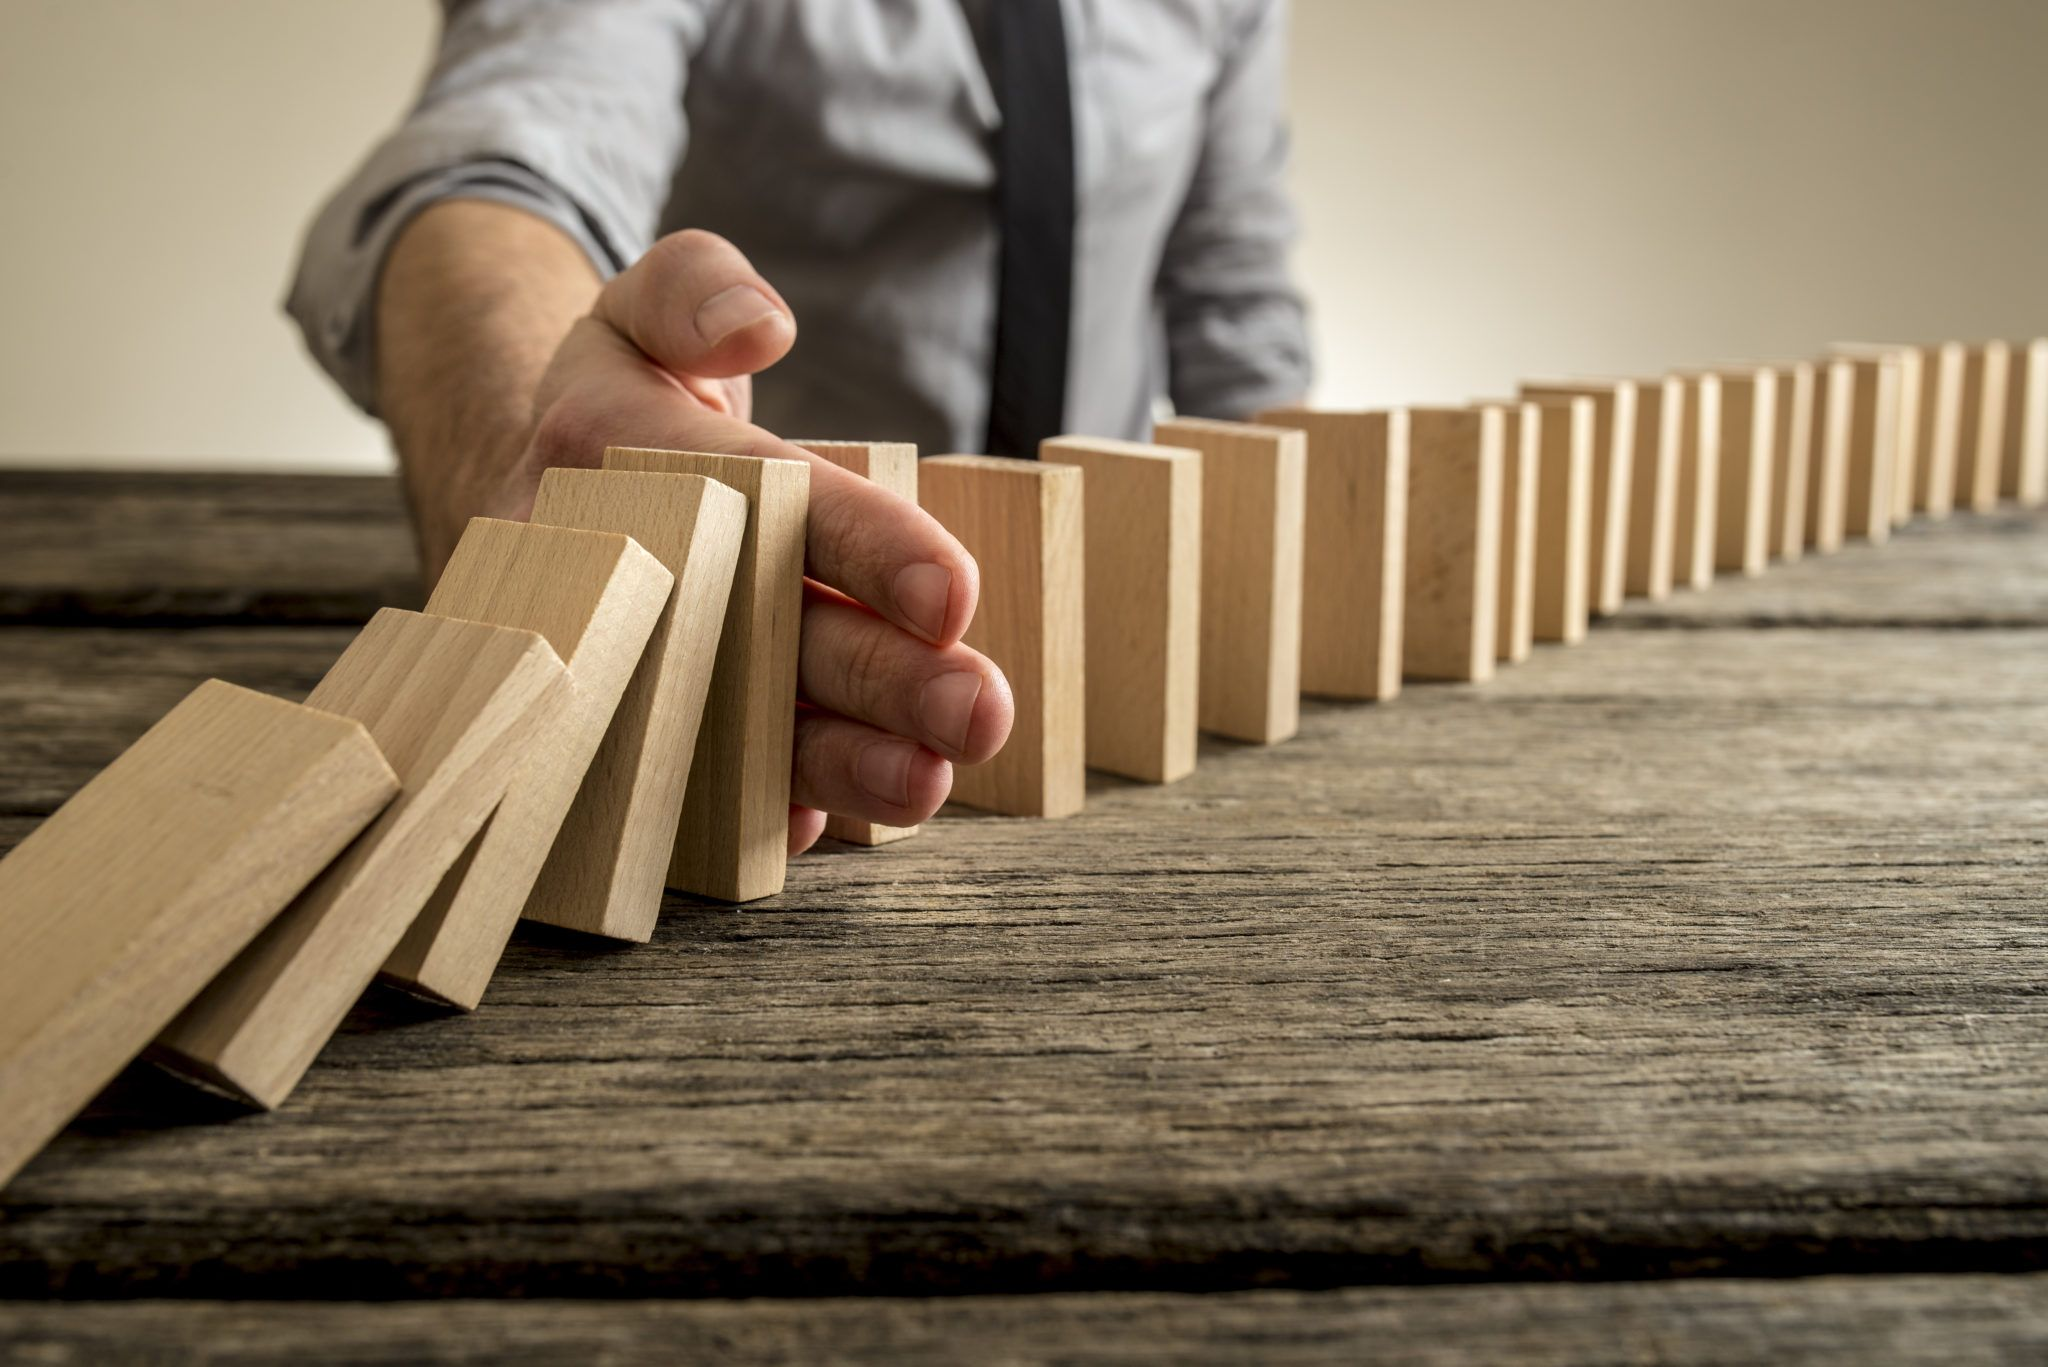 React Positively Domino effect, Wooden tables, Business